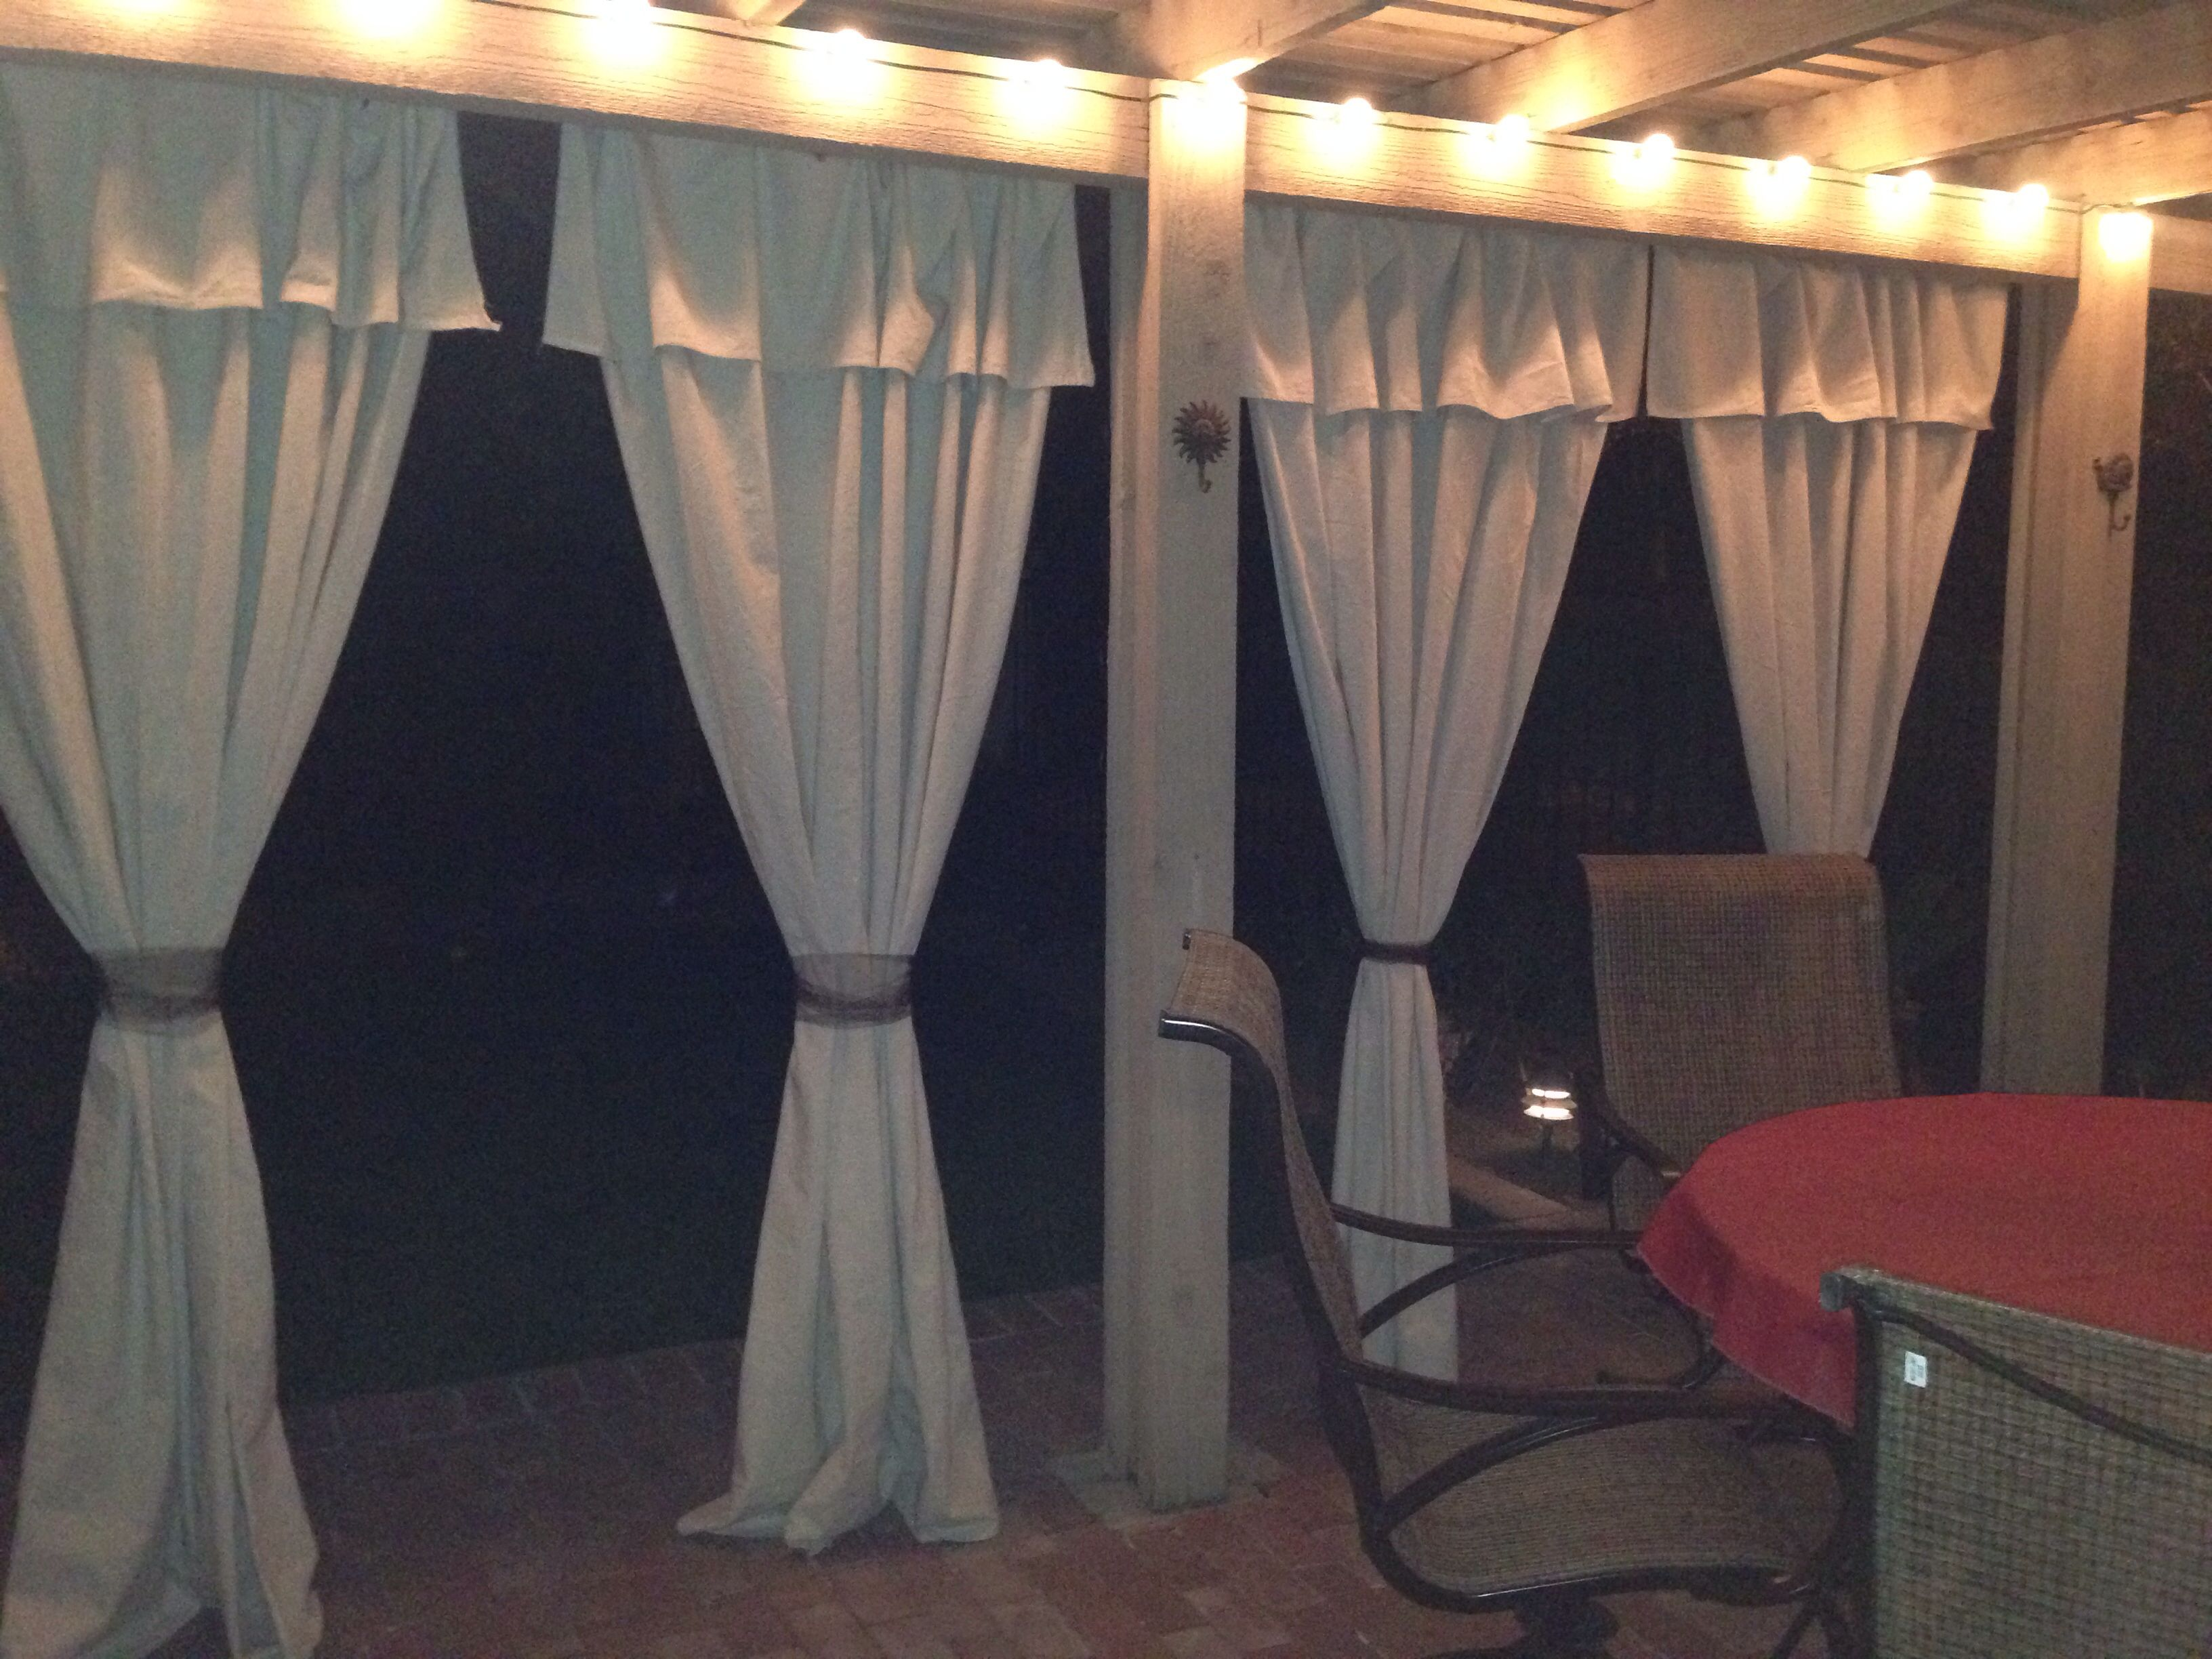 Love my new patio makeover with painters tarp curtains